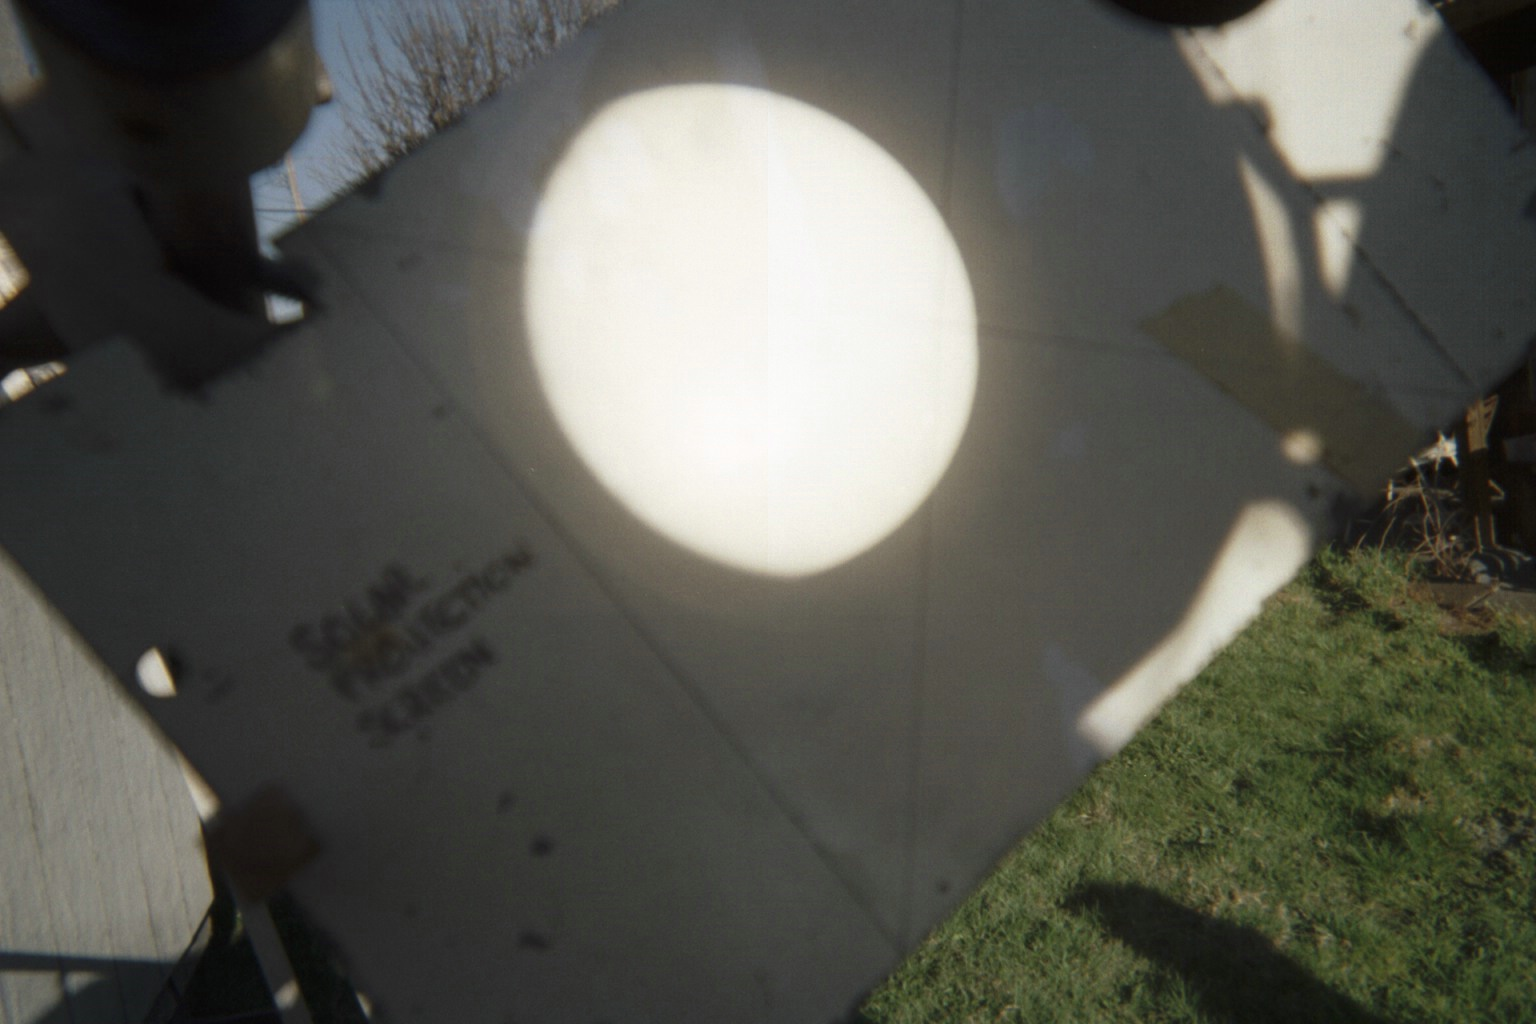 Solar eclipse image, projected on a white card